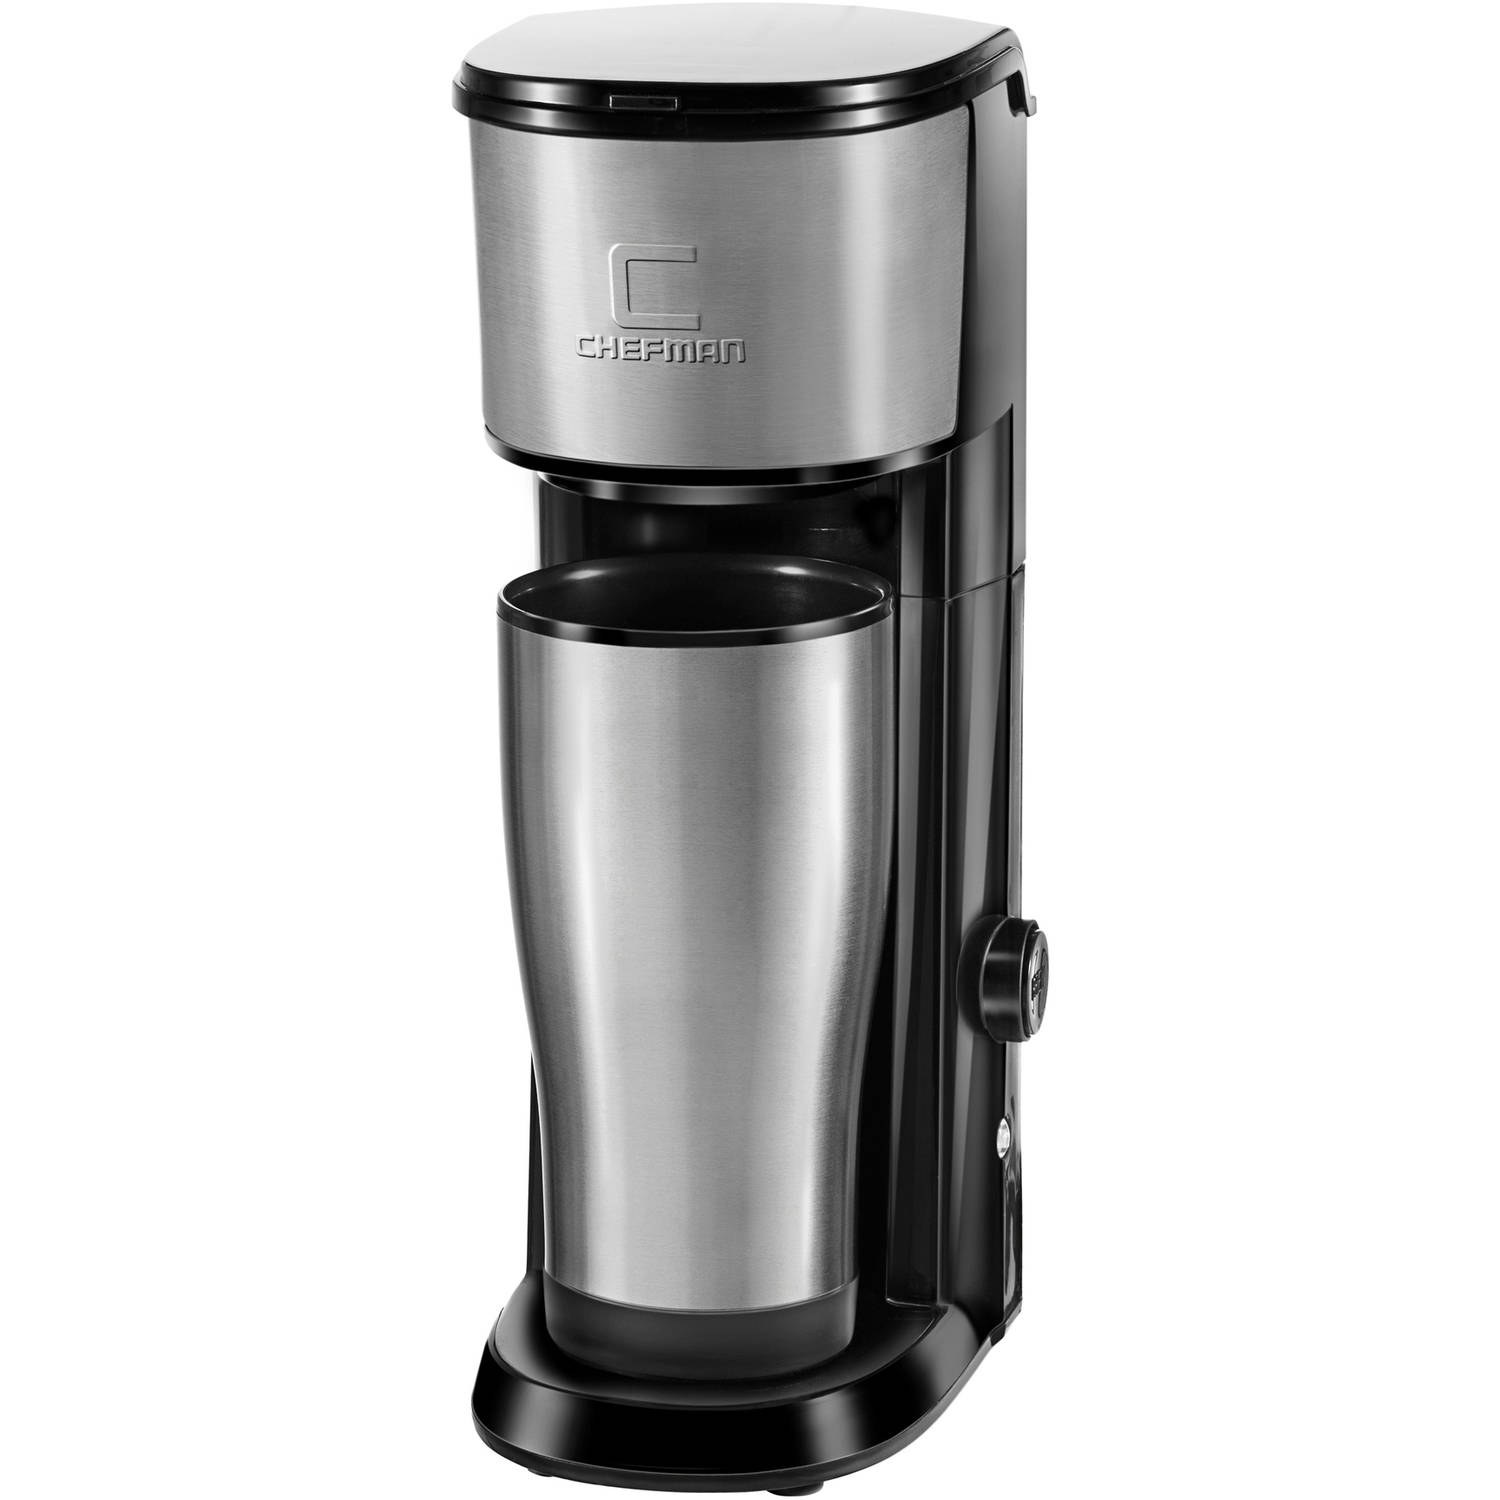 Chefman Coffee Maker K Cup VersaBrew Brewer FREE FILTER INCLUDED